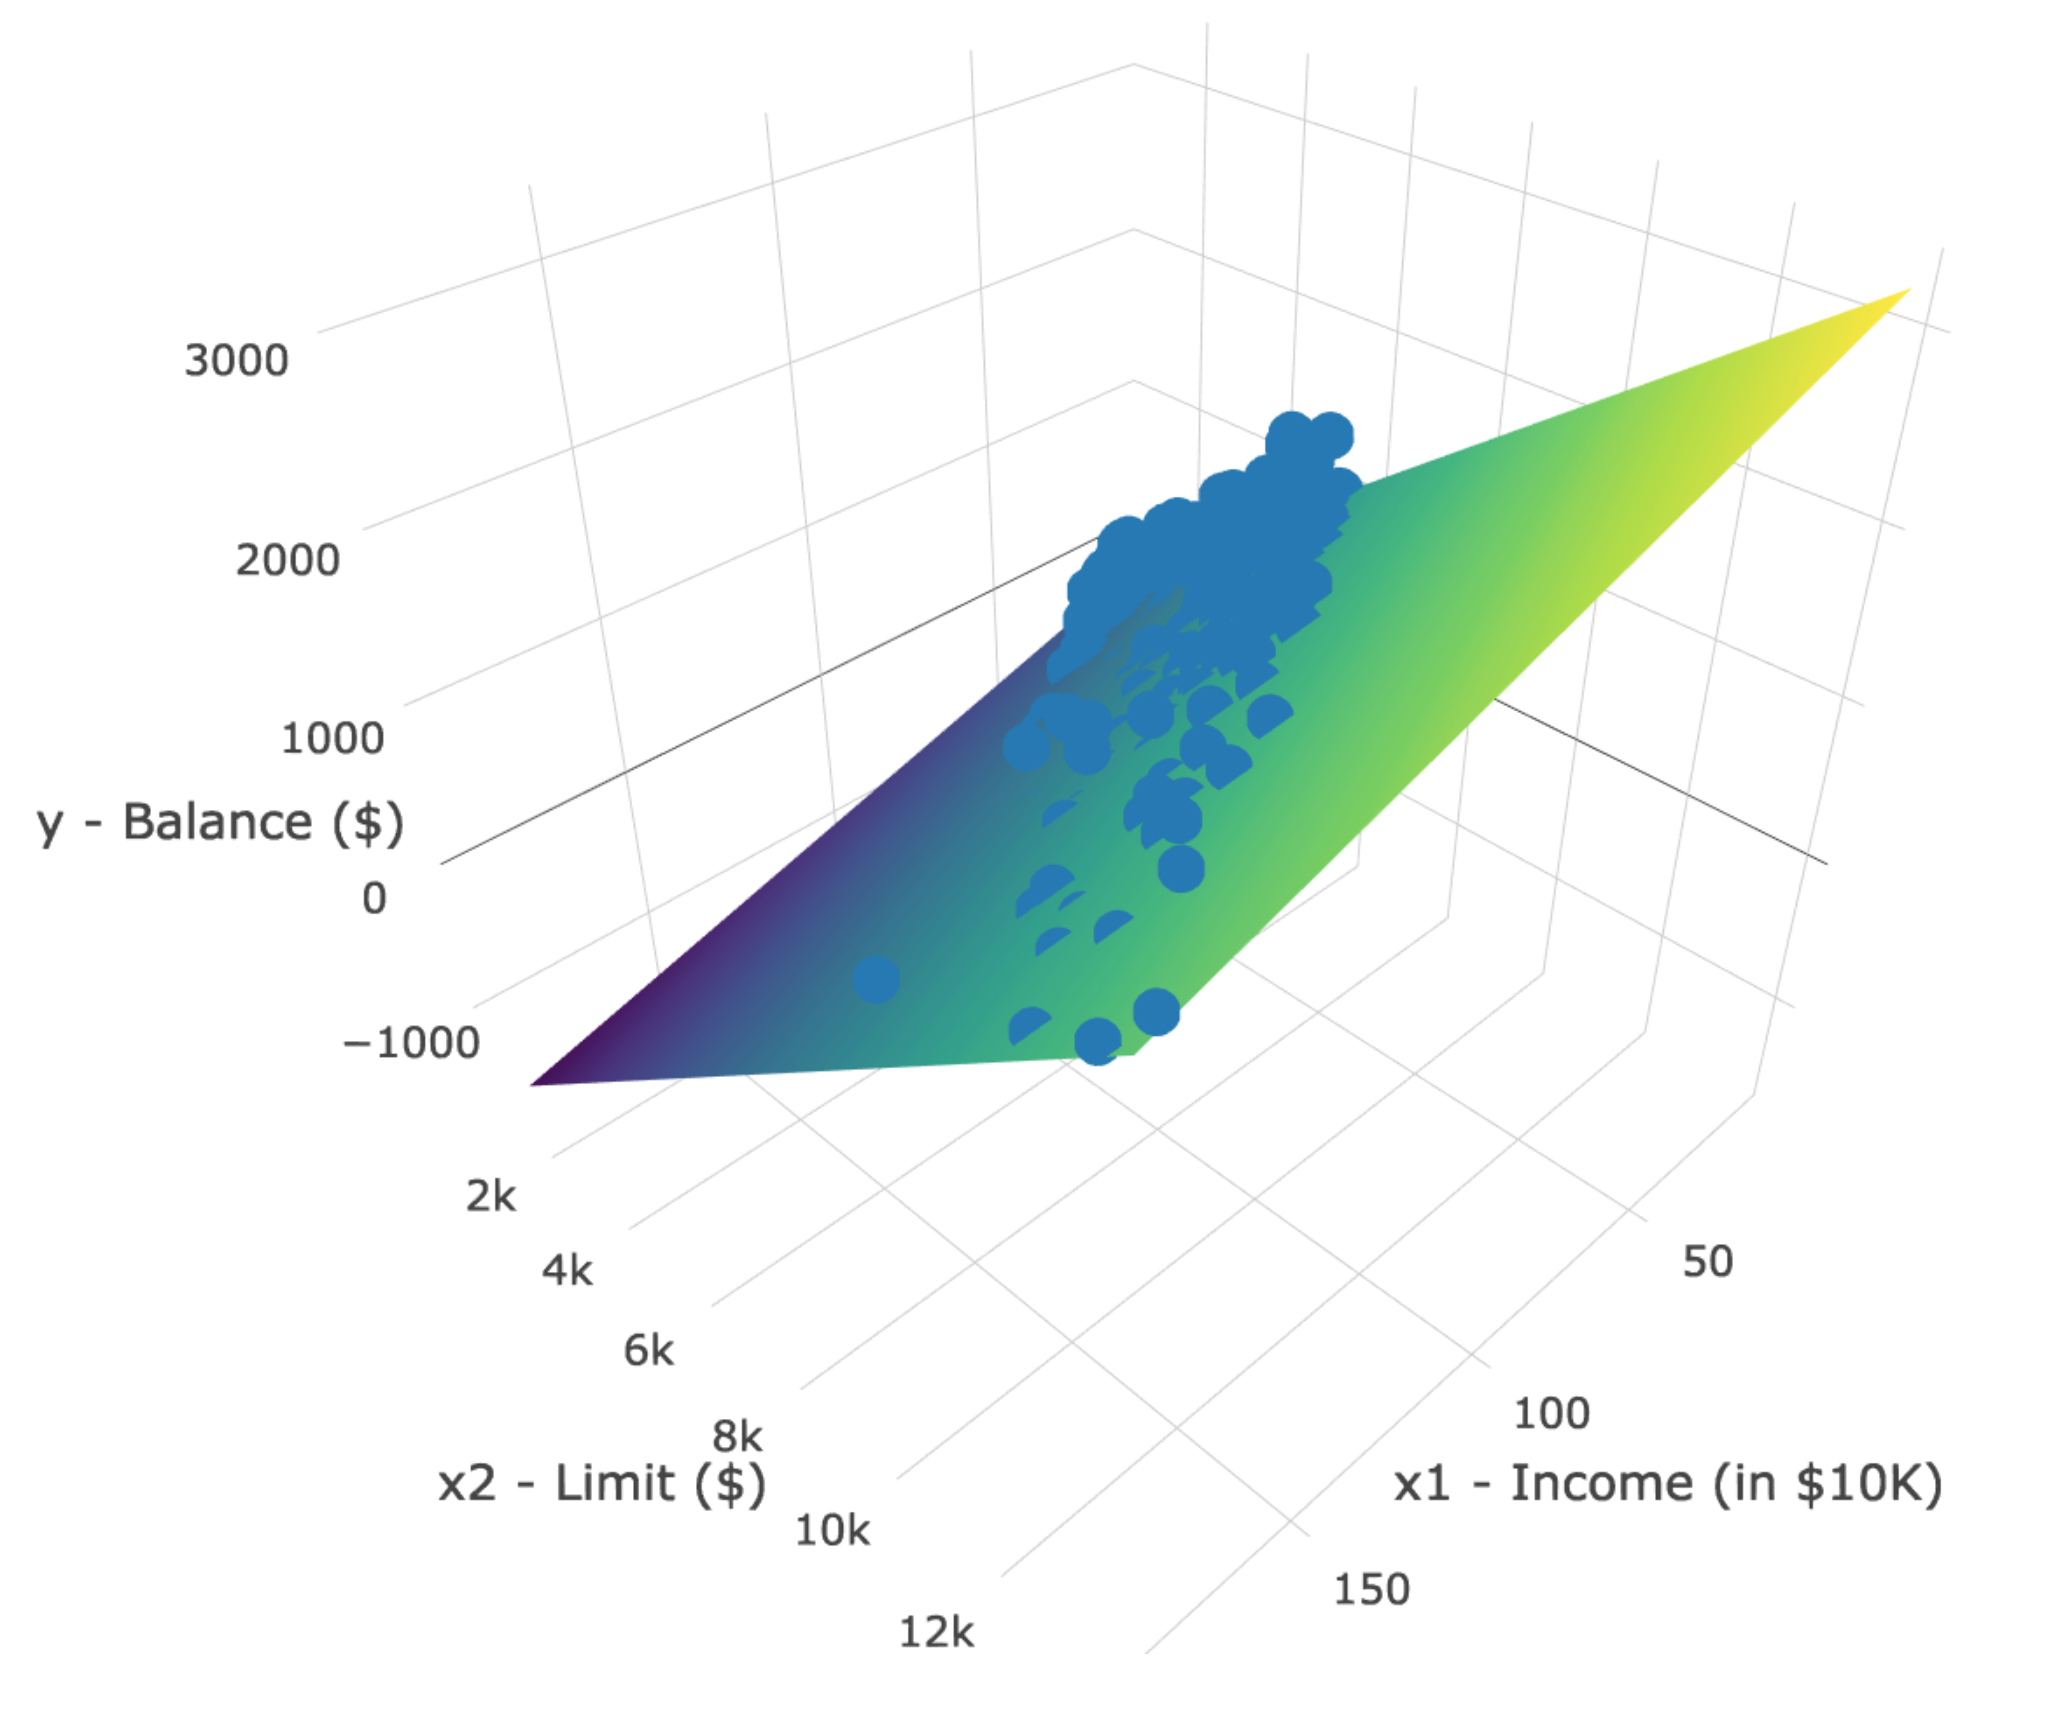 3D scatterplot and regression plane.